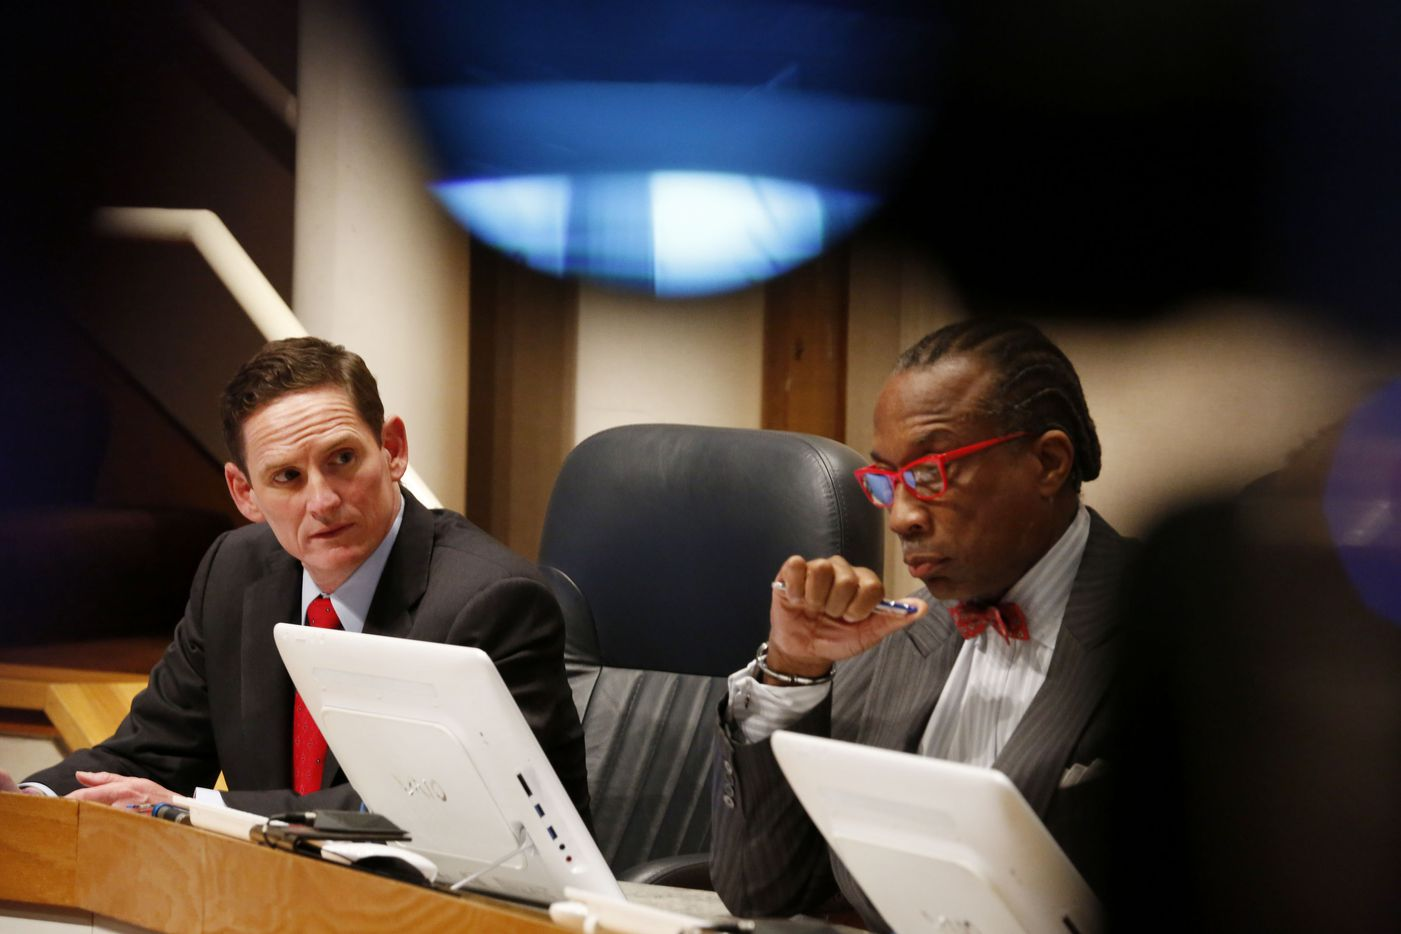 Dallas County Judge Clay Jenkins and Commissioner John Wiley Price listen during a Dallas County Commissioners Court special meeting to discuss the Ebola crisis in October, 2014.